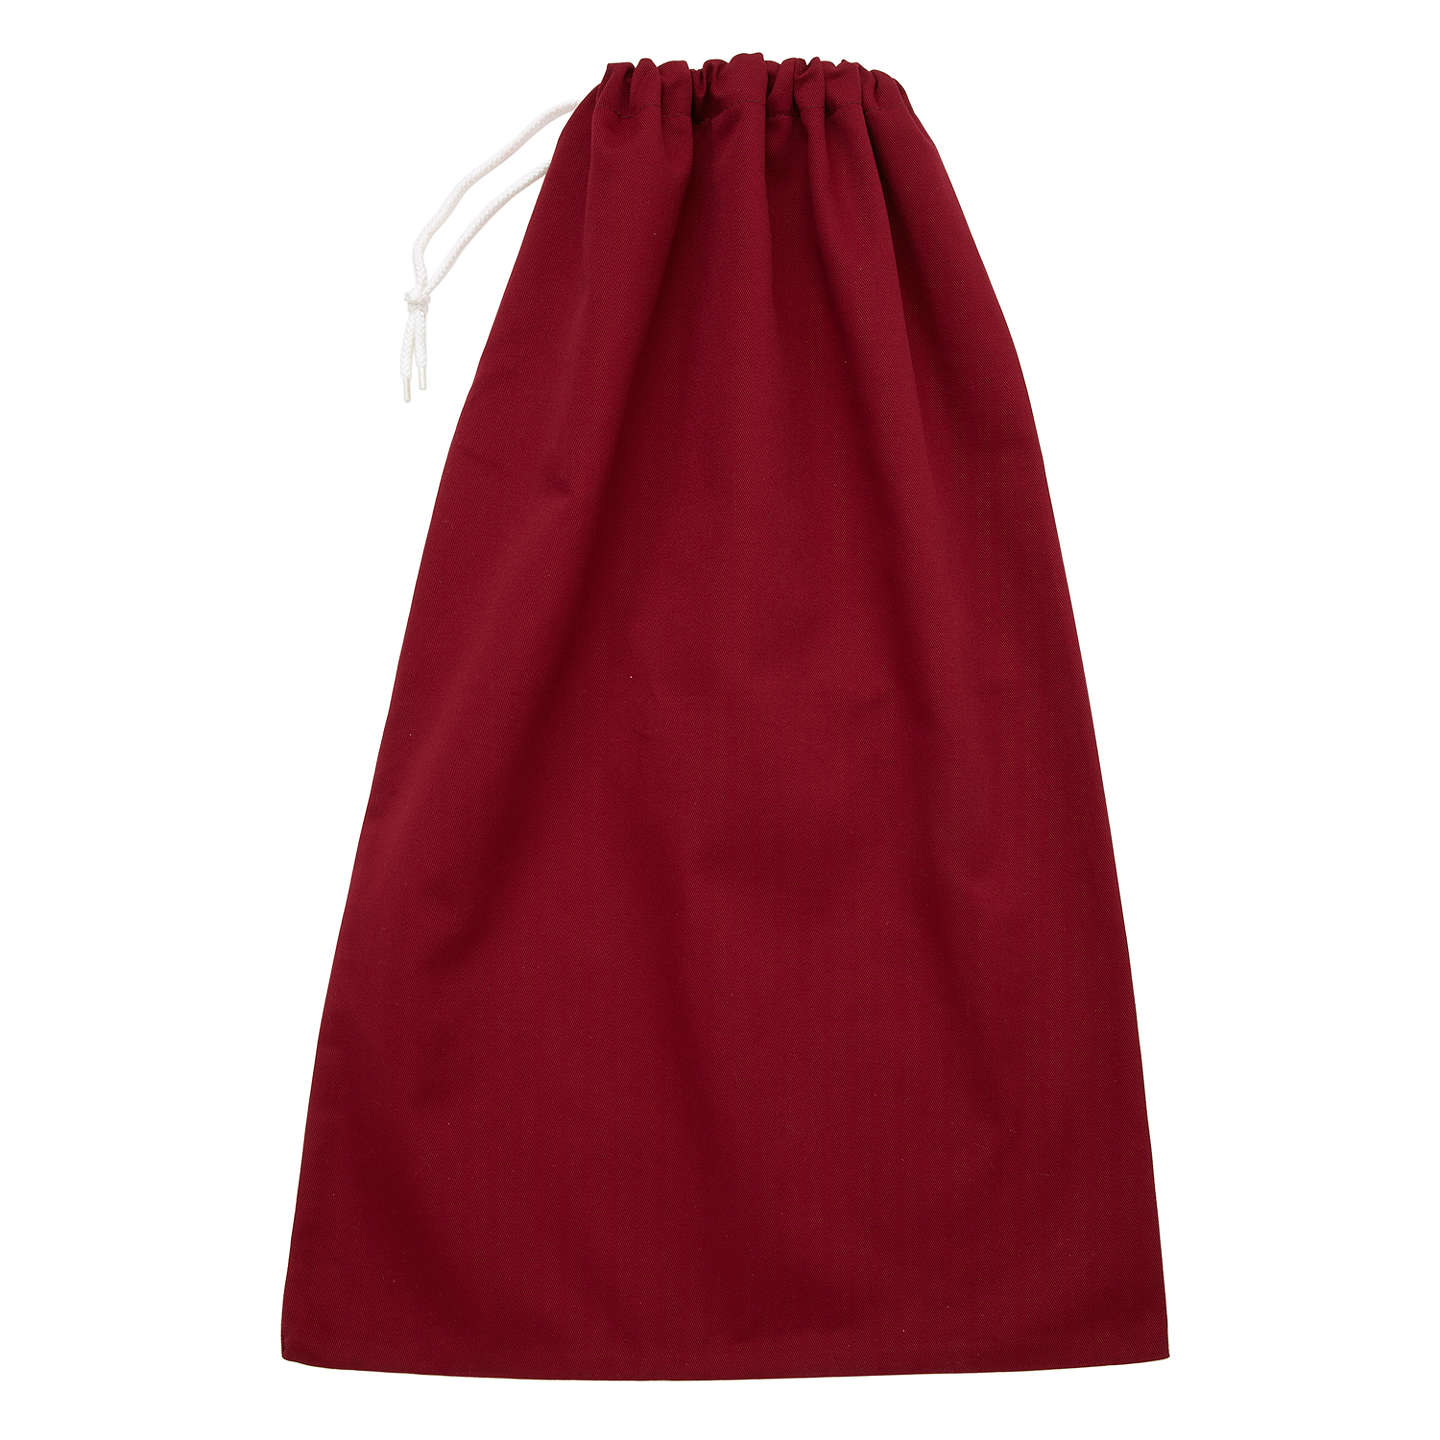 "BuySchool Unisex PE Kit Bag, Maroon, 27"" x 17.5"" Online at johnlewis.com"